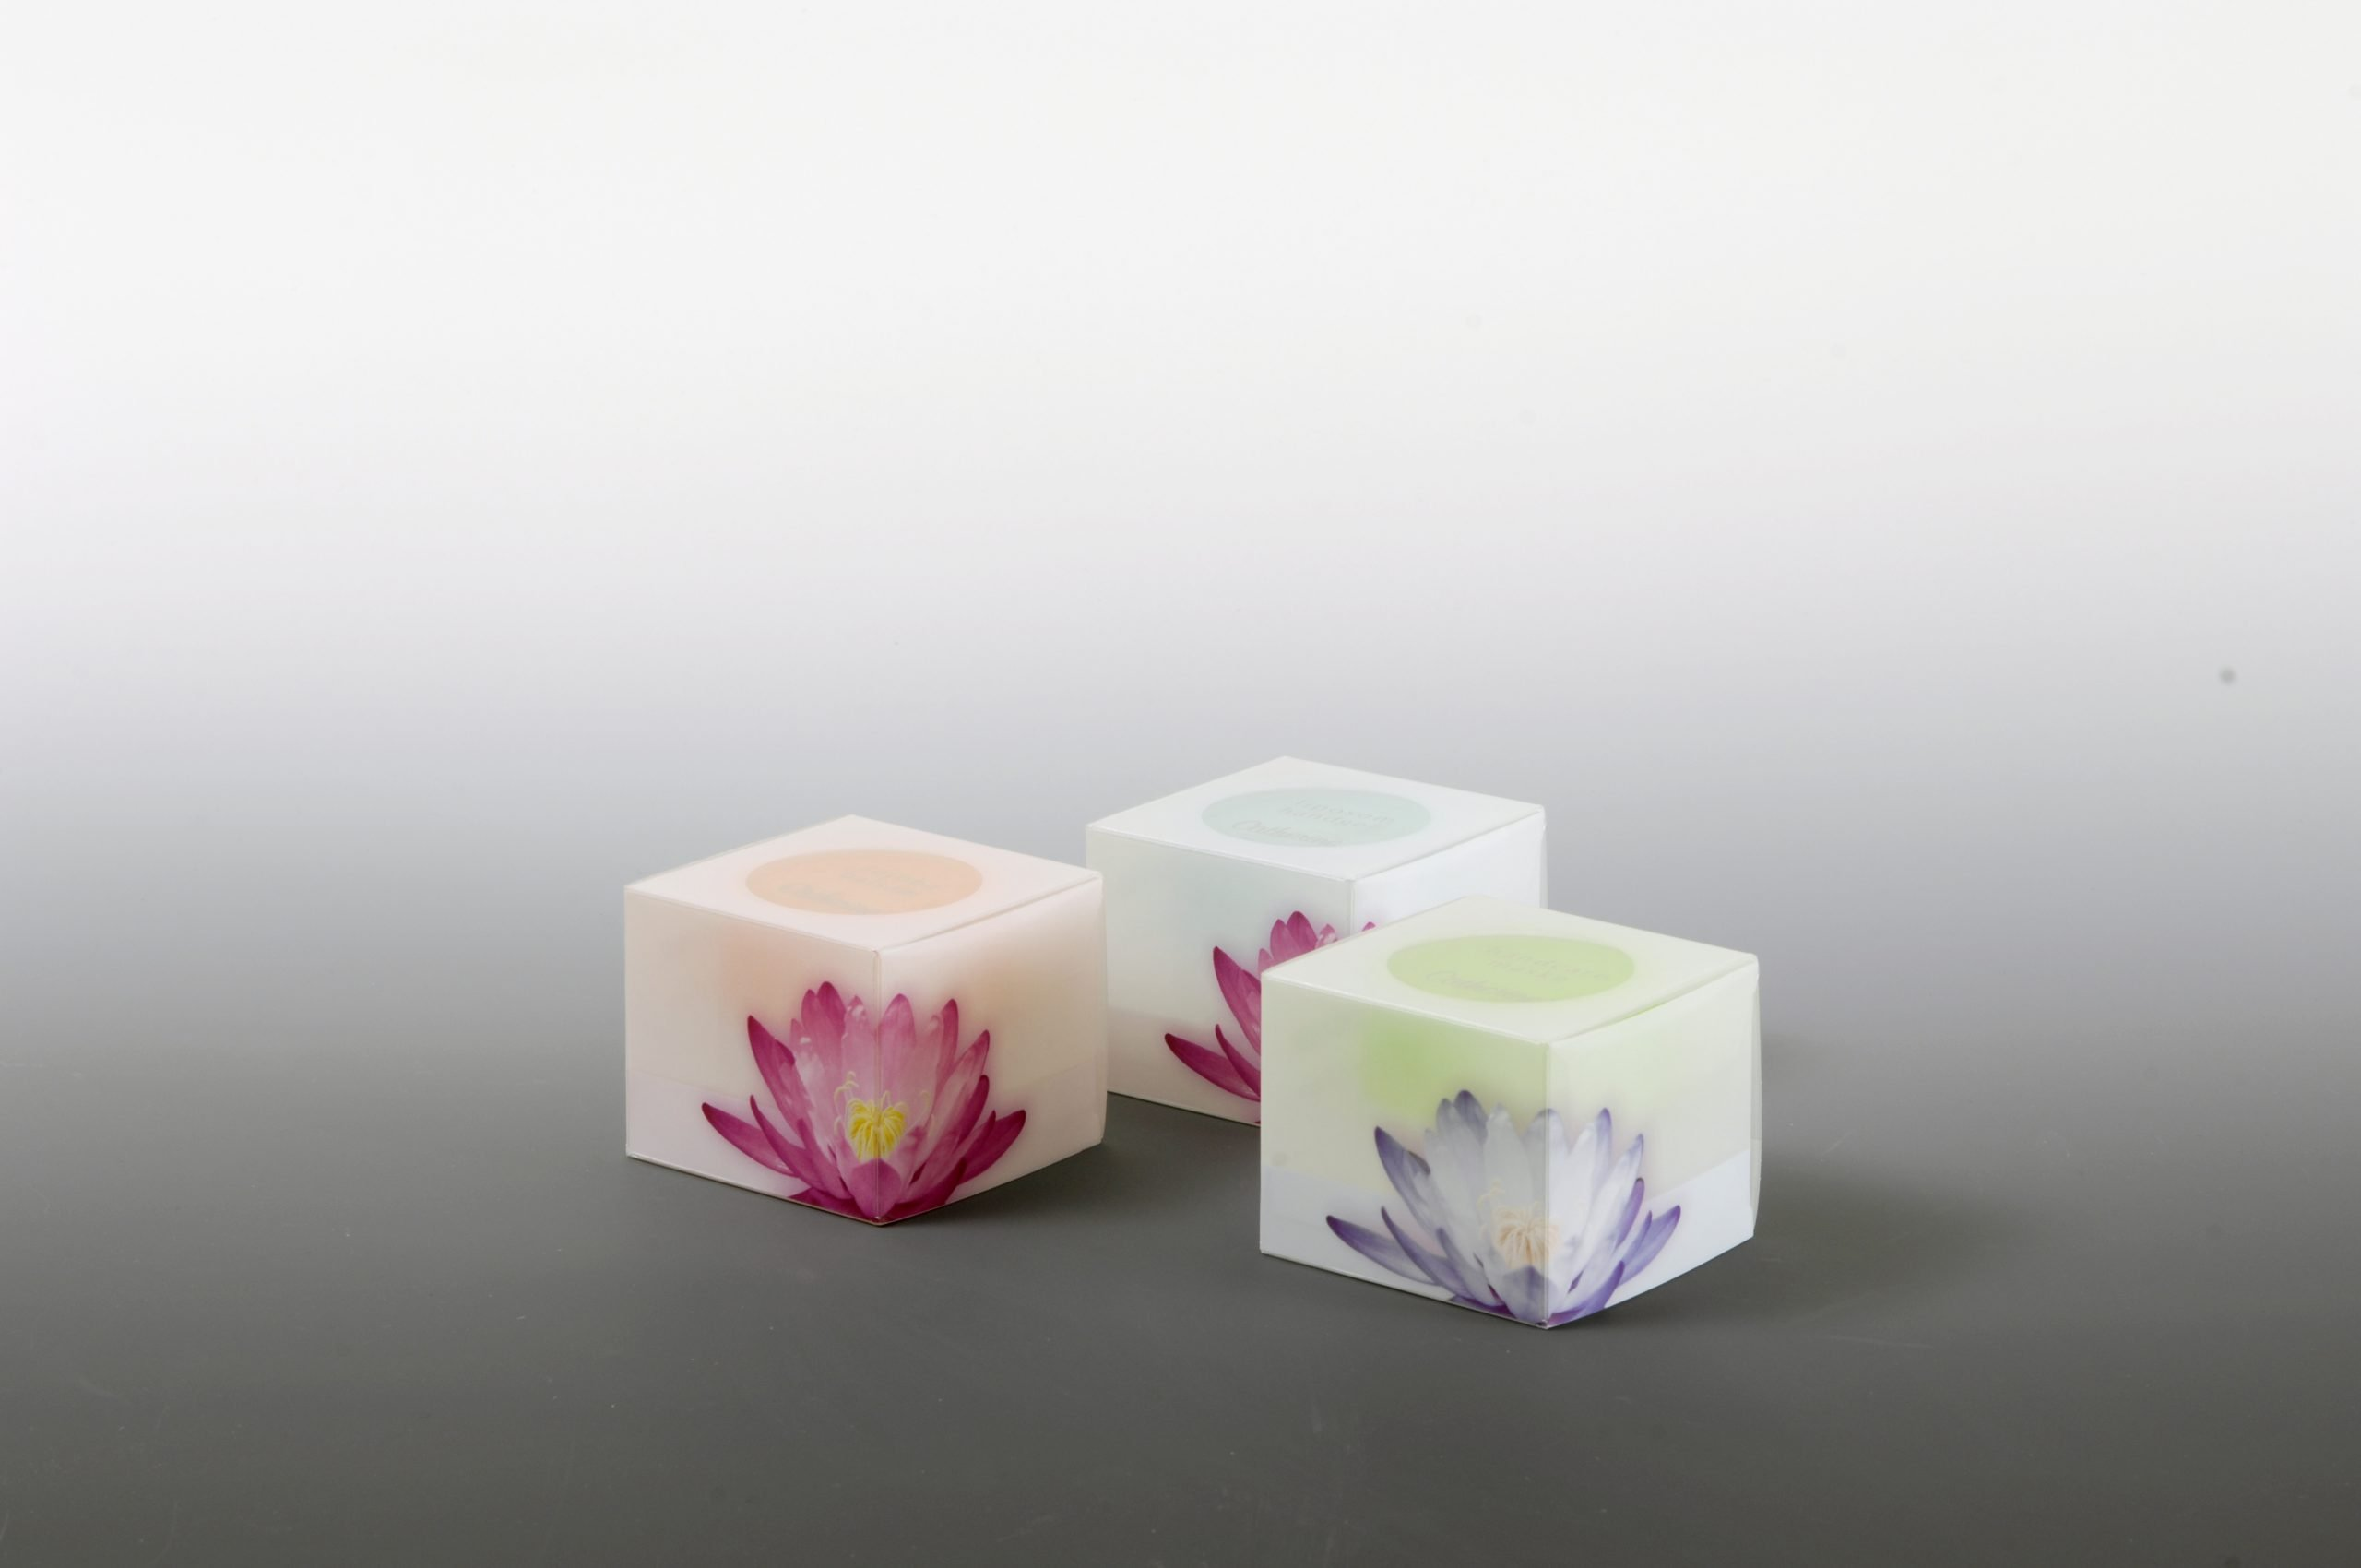 3 sets of cube tealight holders with flower print